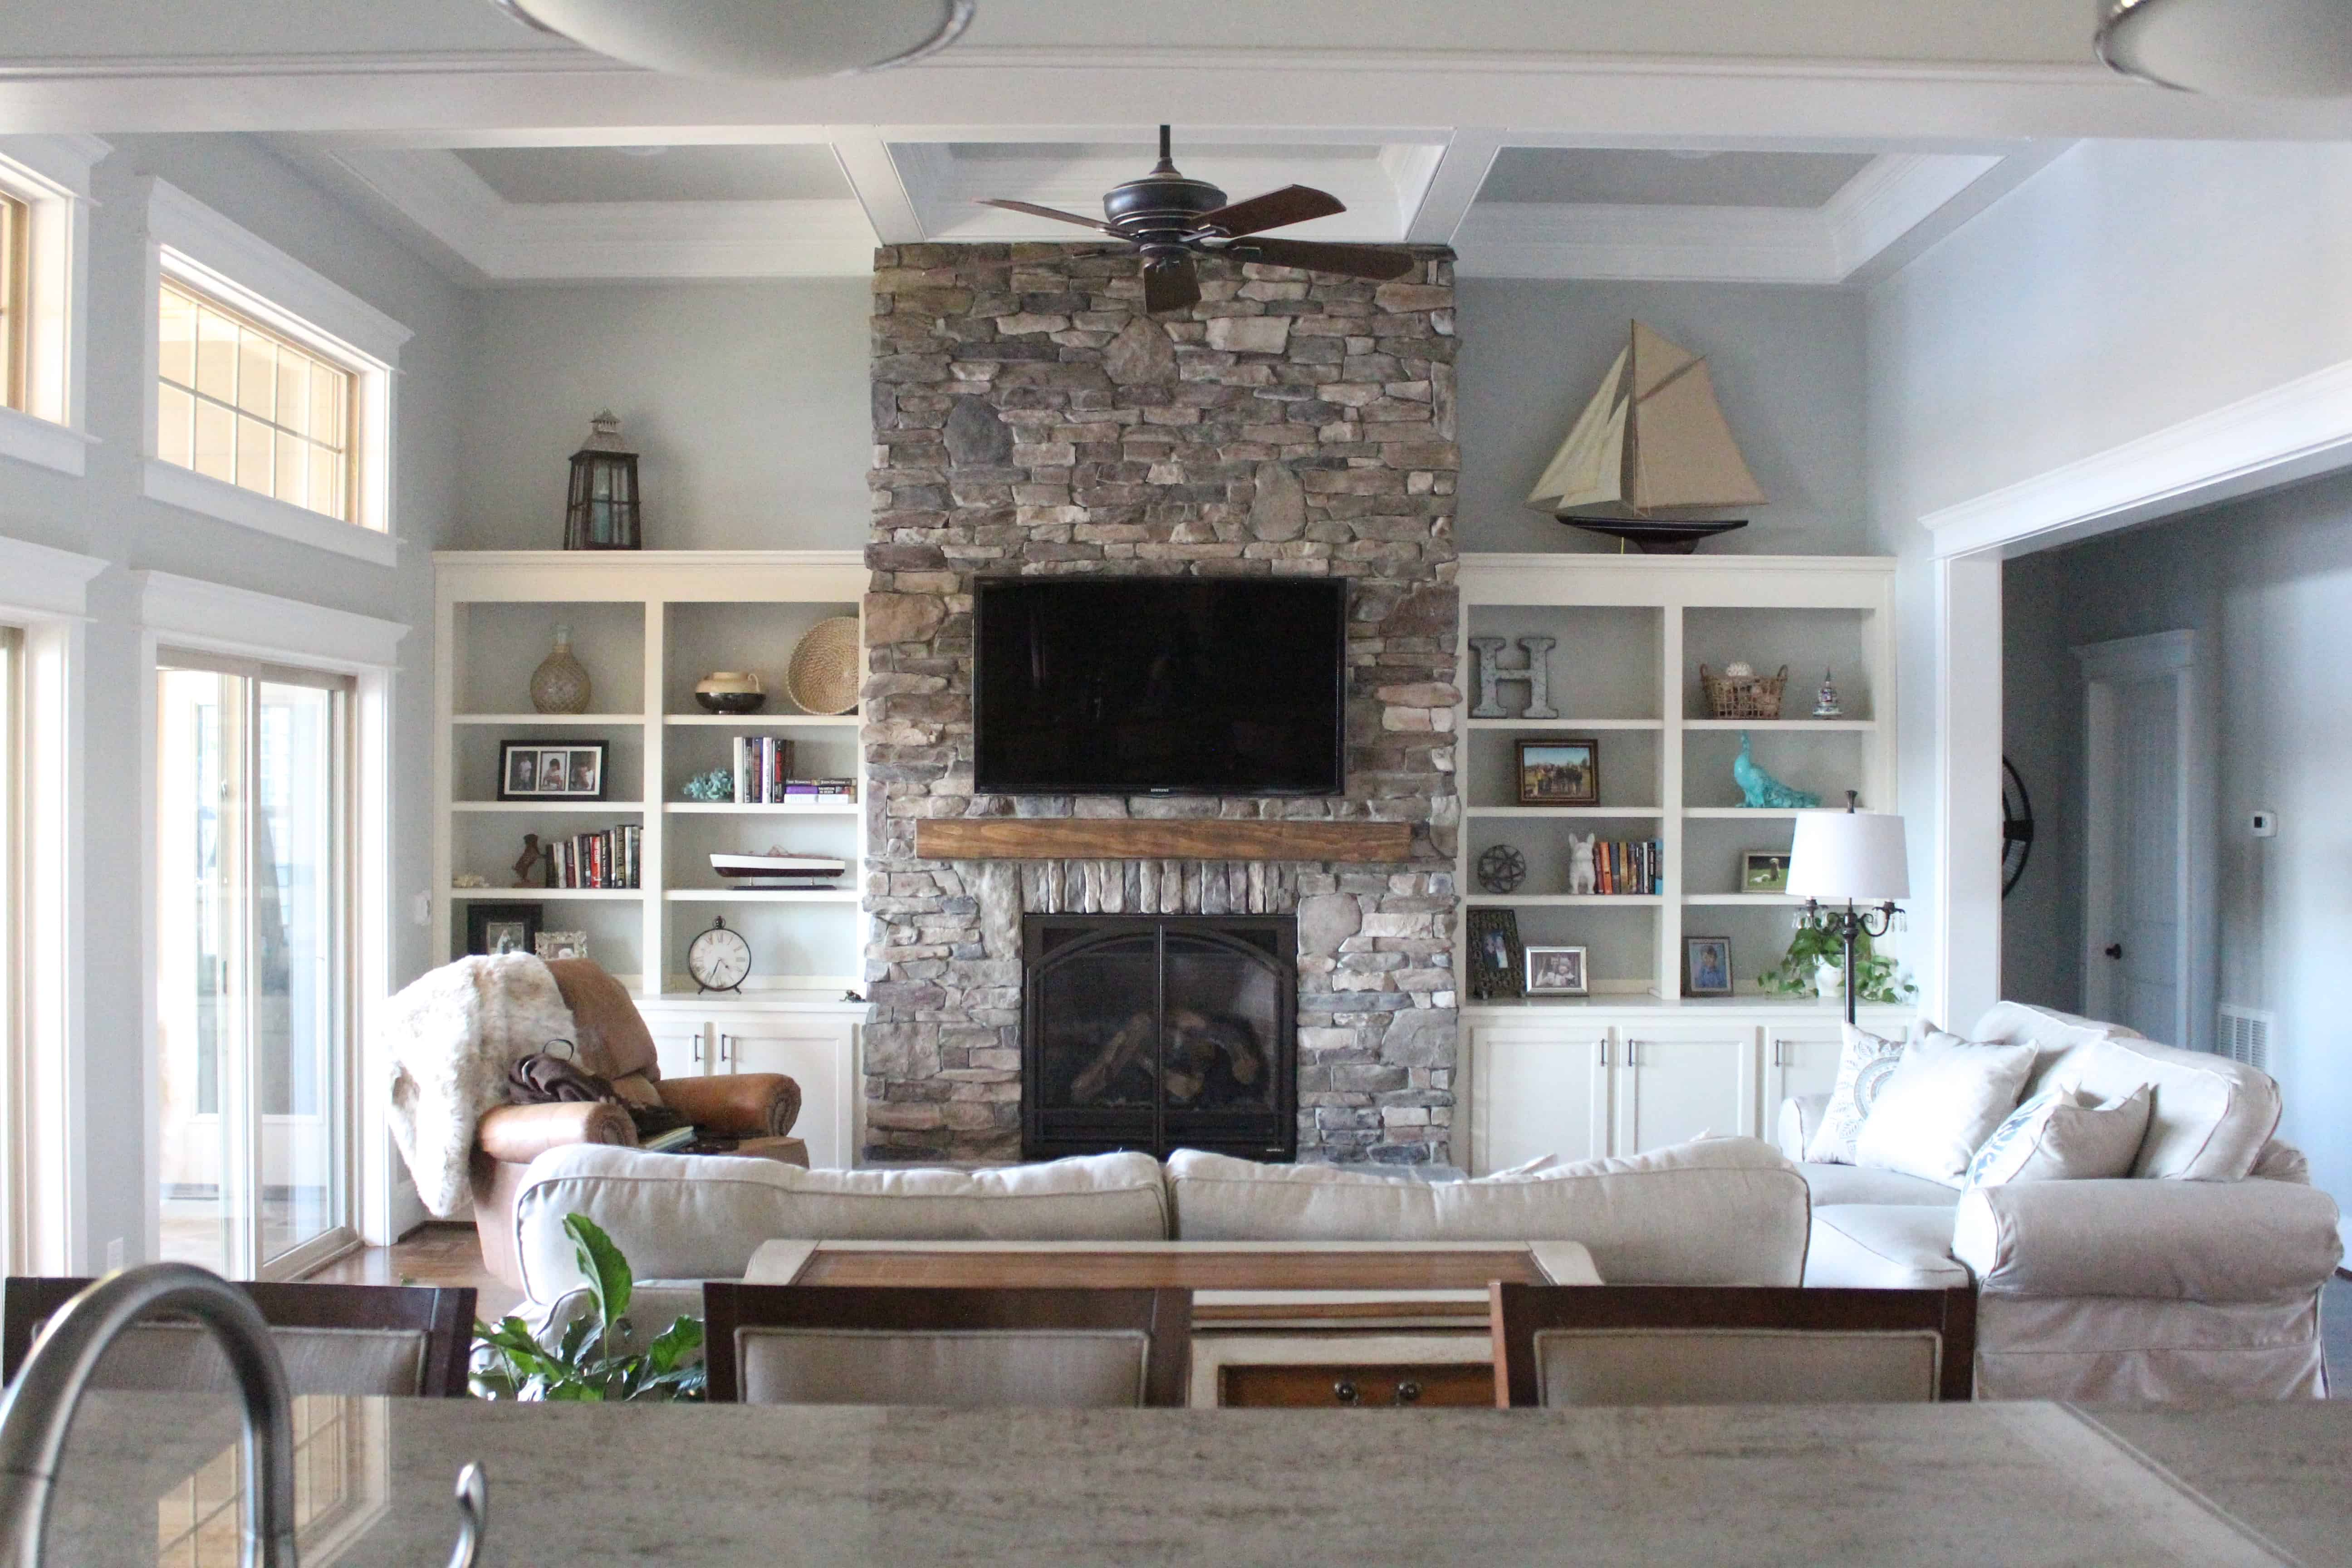 Home Of The Month: Lake House Sources - Simple Stylings